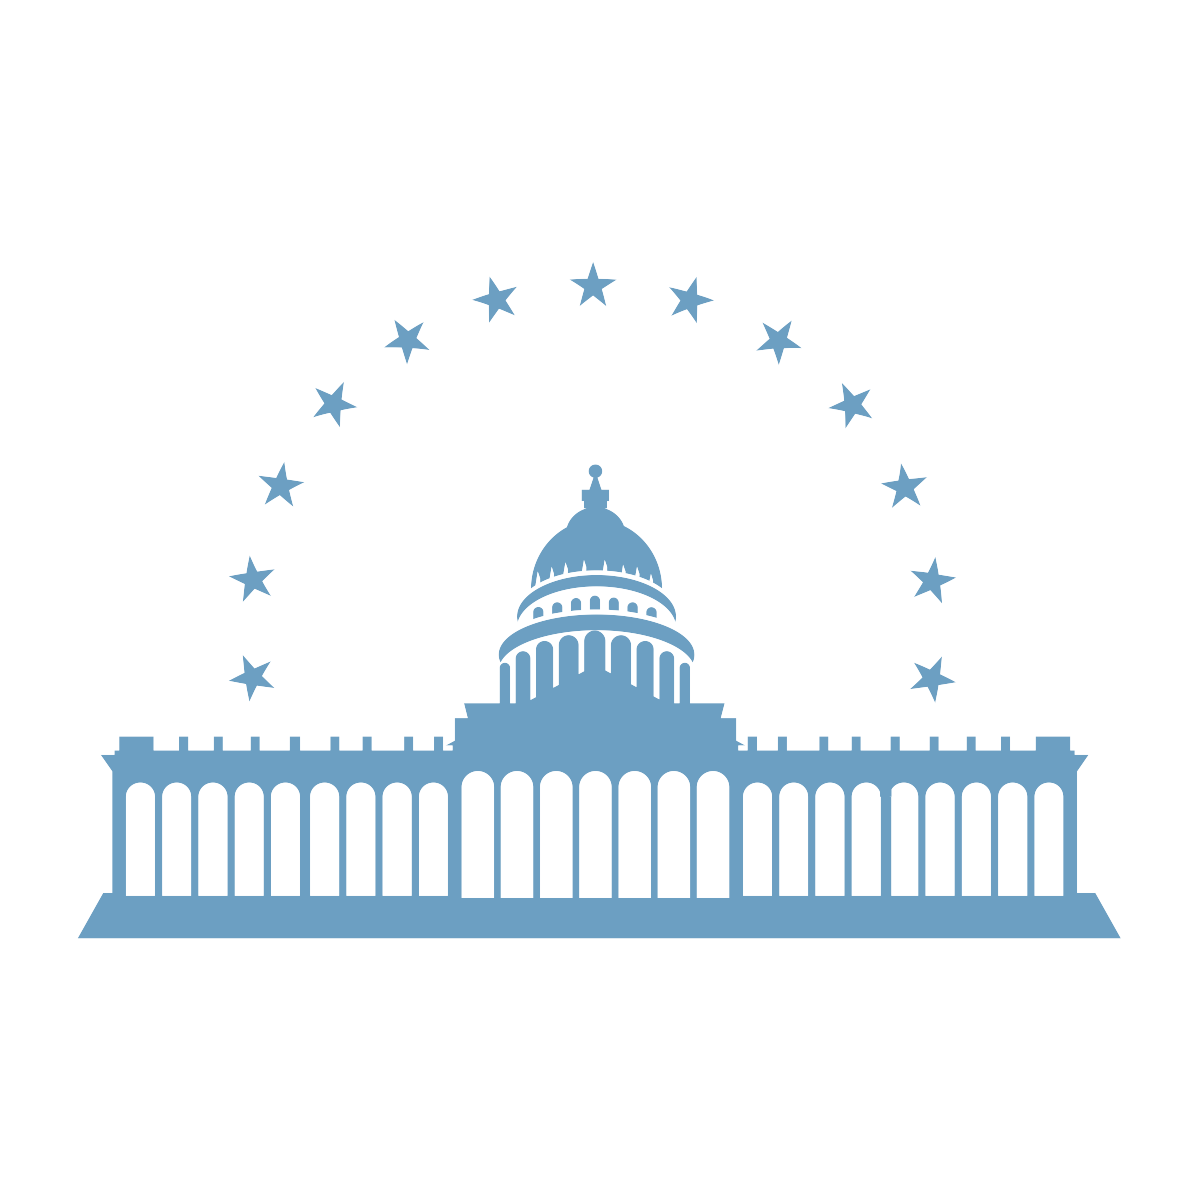 Outline of the United States Capitol building